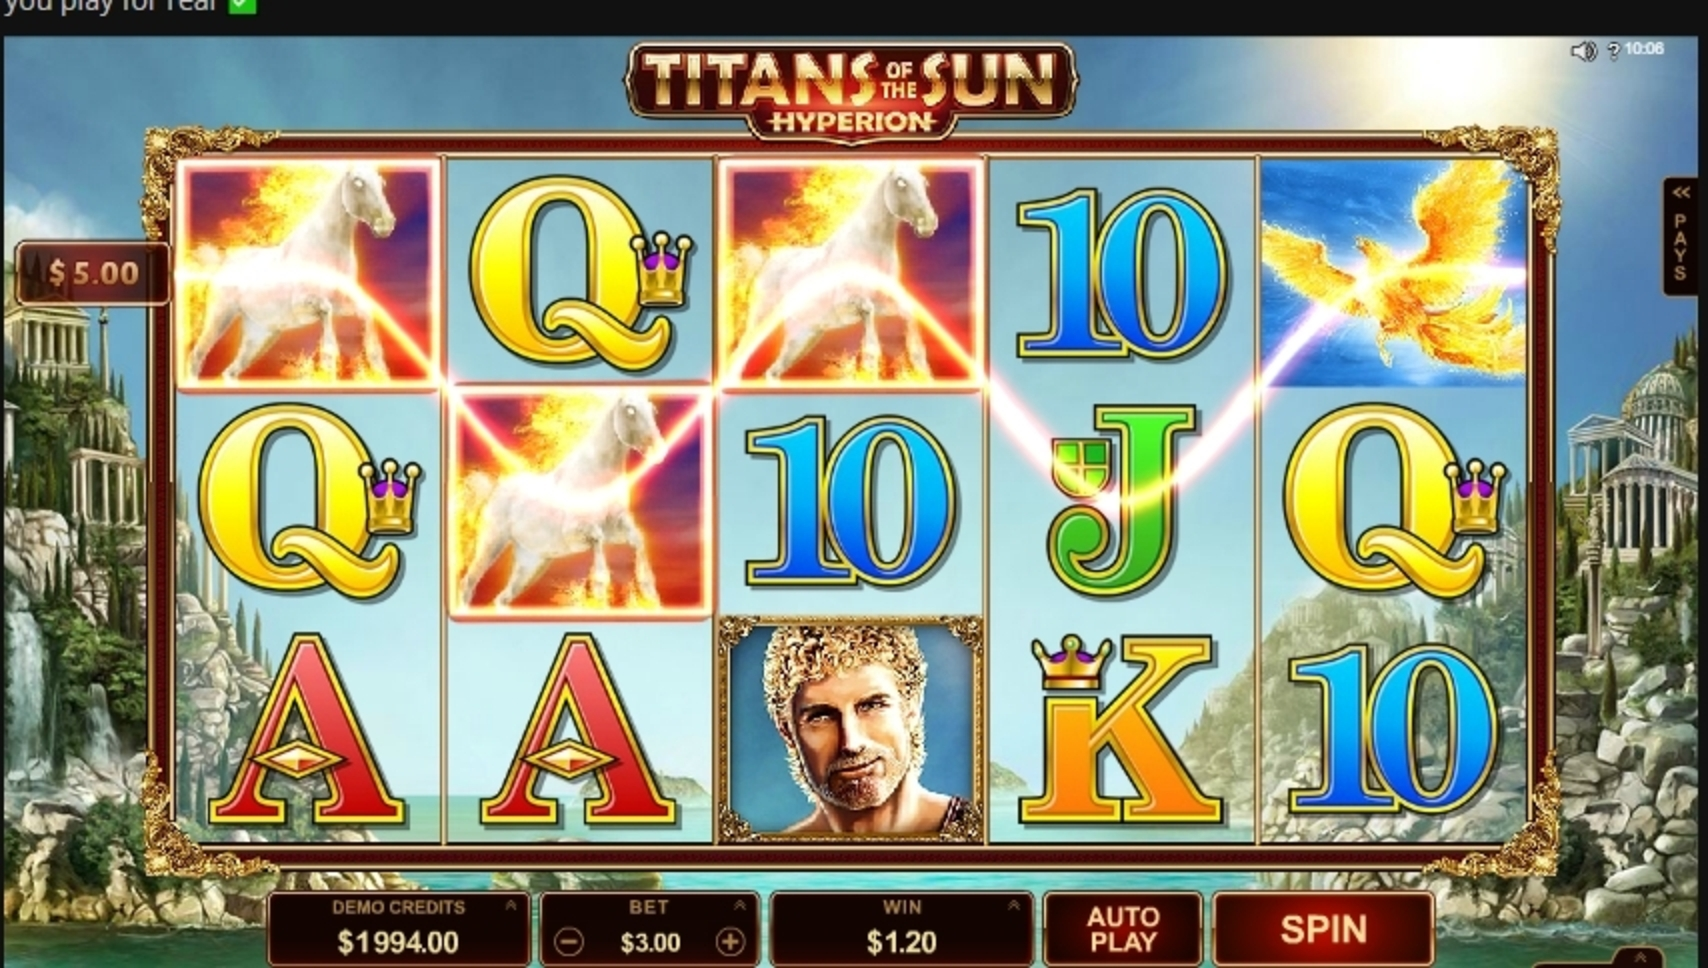 Win Money in Titans of the Sun Hyperion Free Slot Game by Microgaming